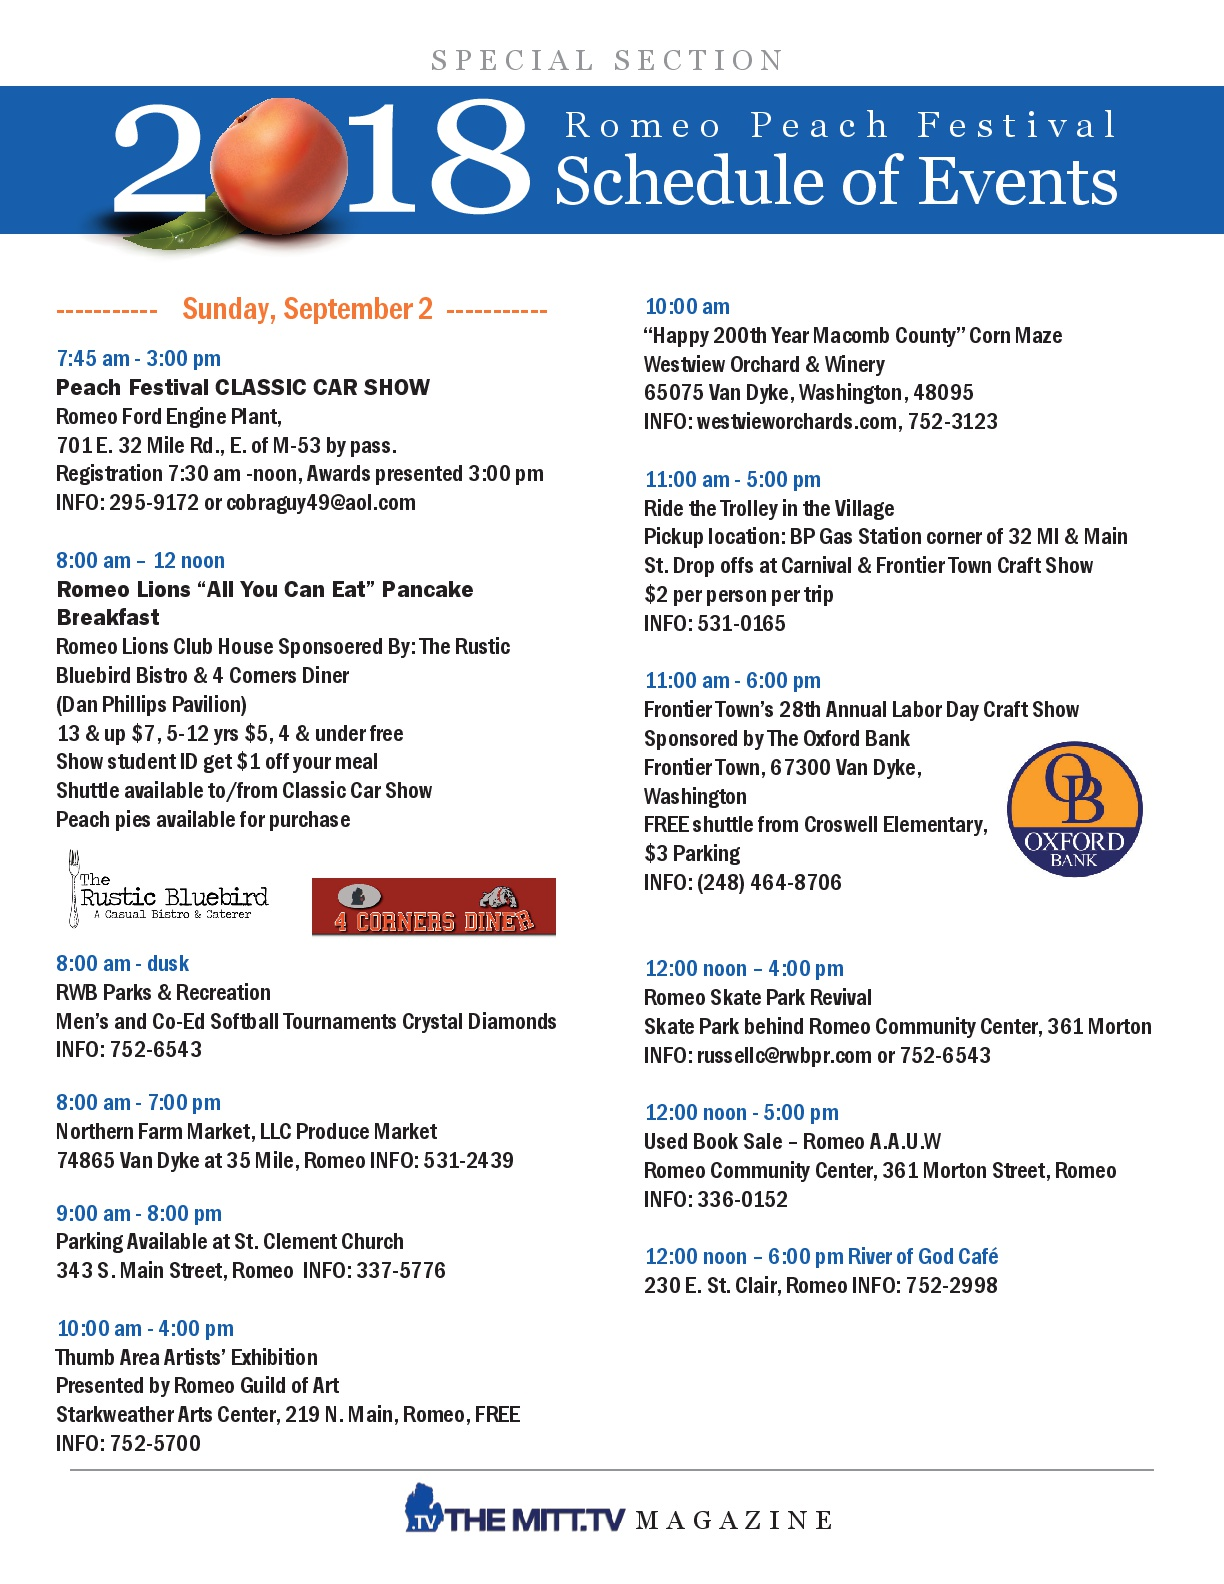 Schedule-of-Events-Pages.final-005.jpg